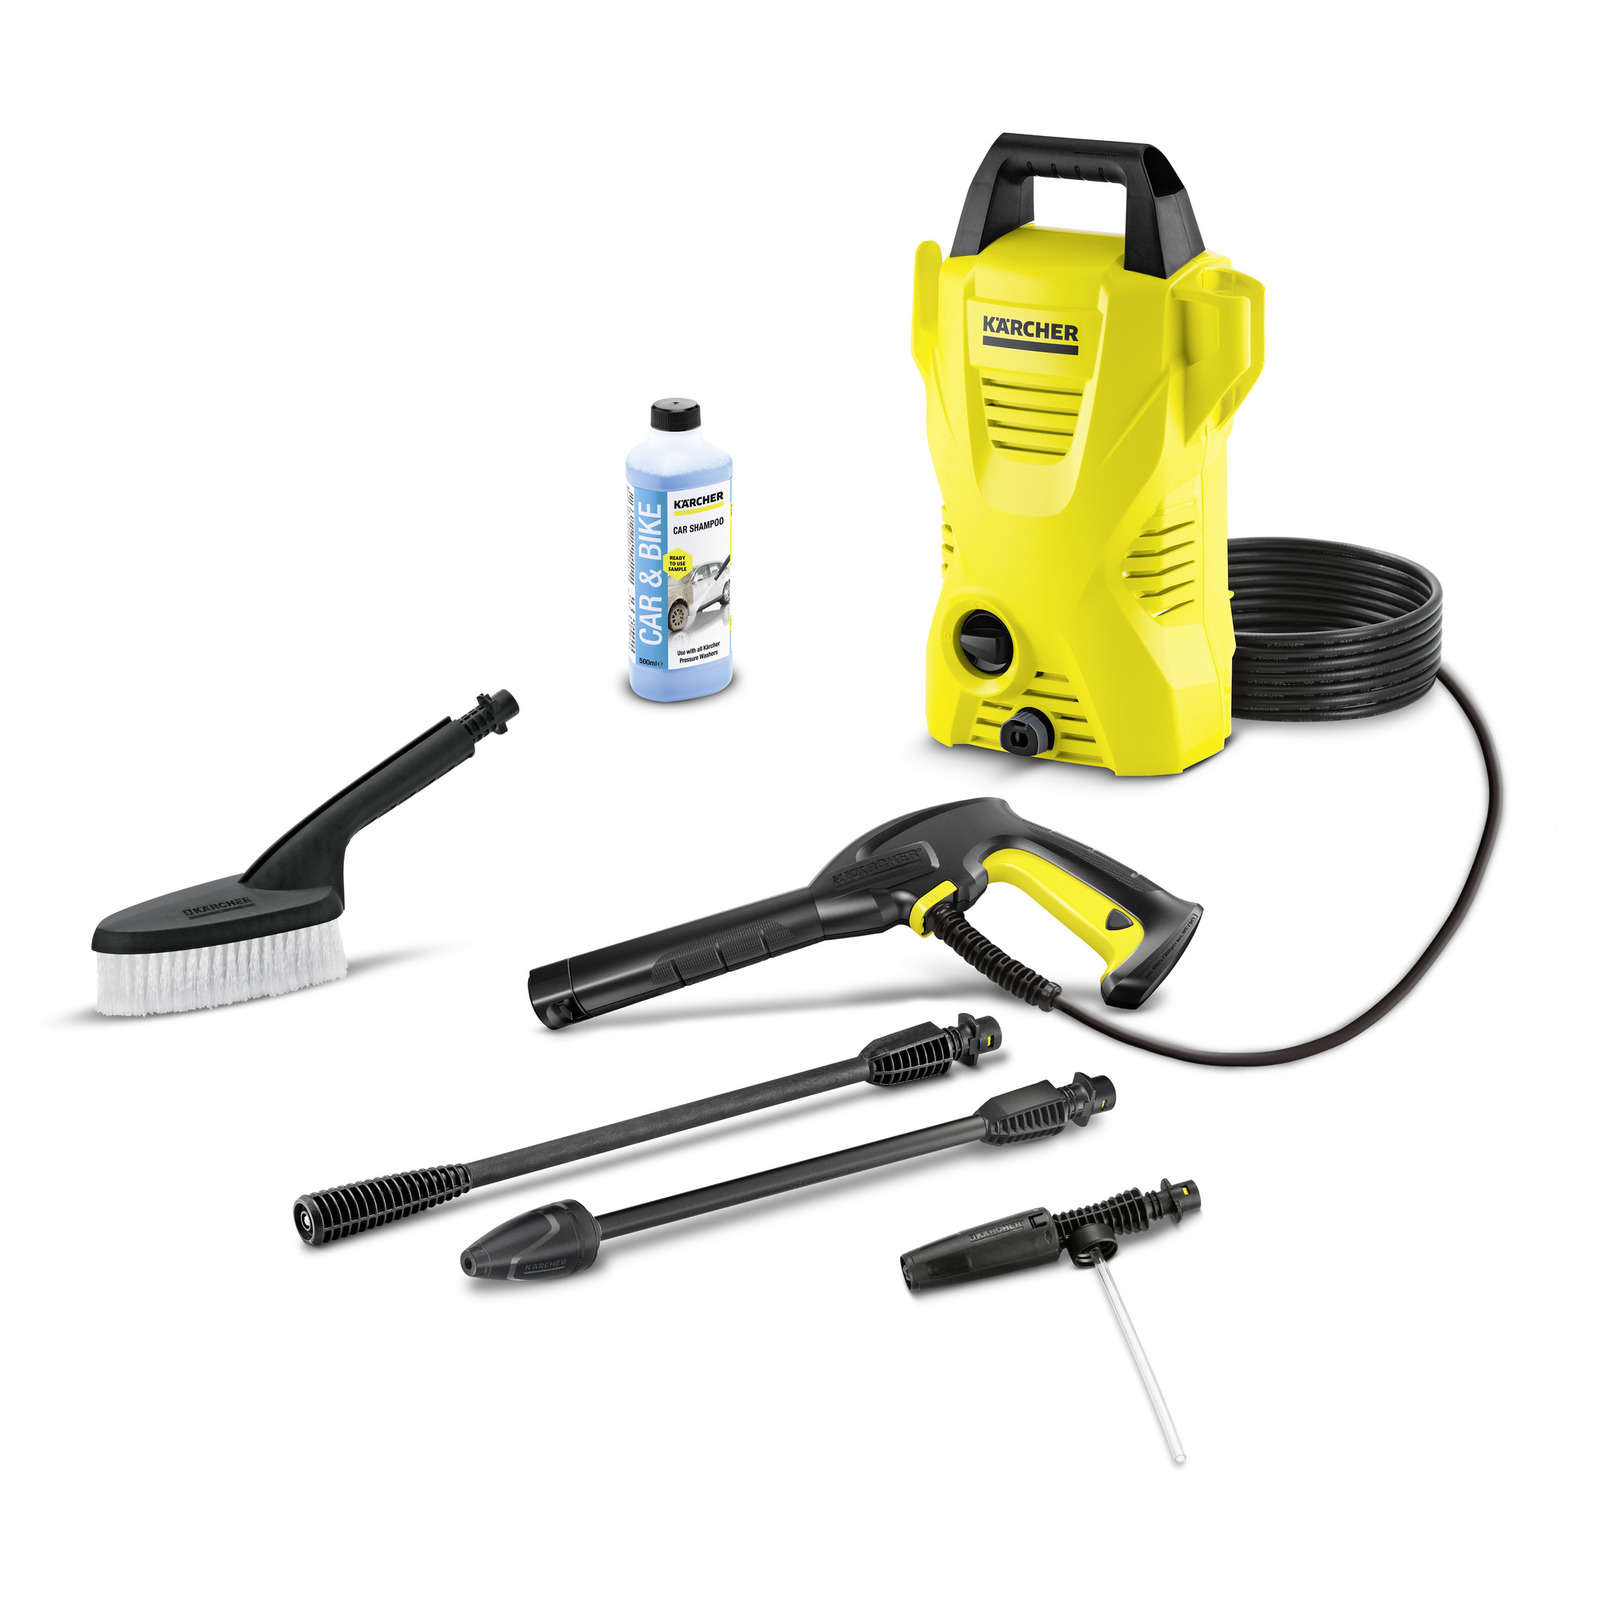 Lot 30267 - V Brand New Karcher K2 Compact Car High Pressure Cleaner With Wash Brush - Foam Nozzle & Car Shampoo